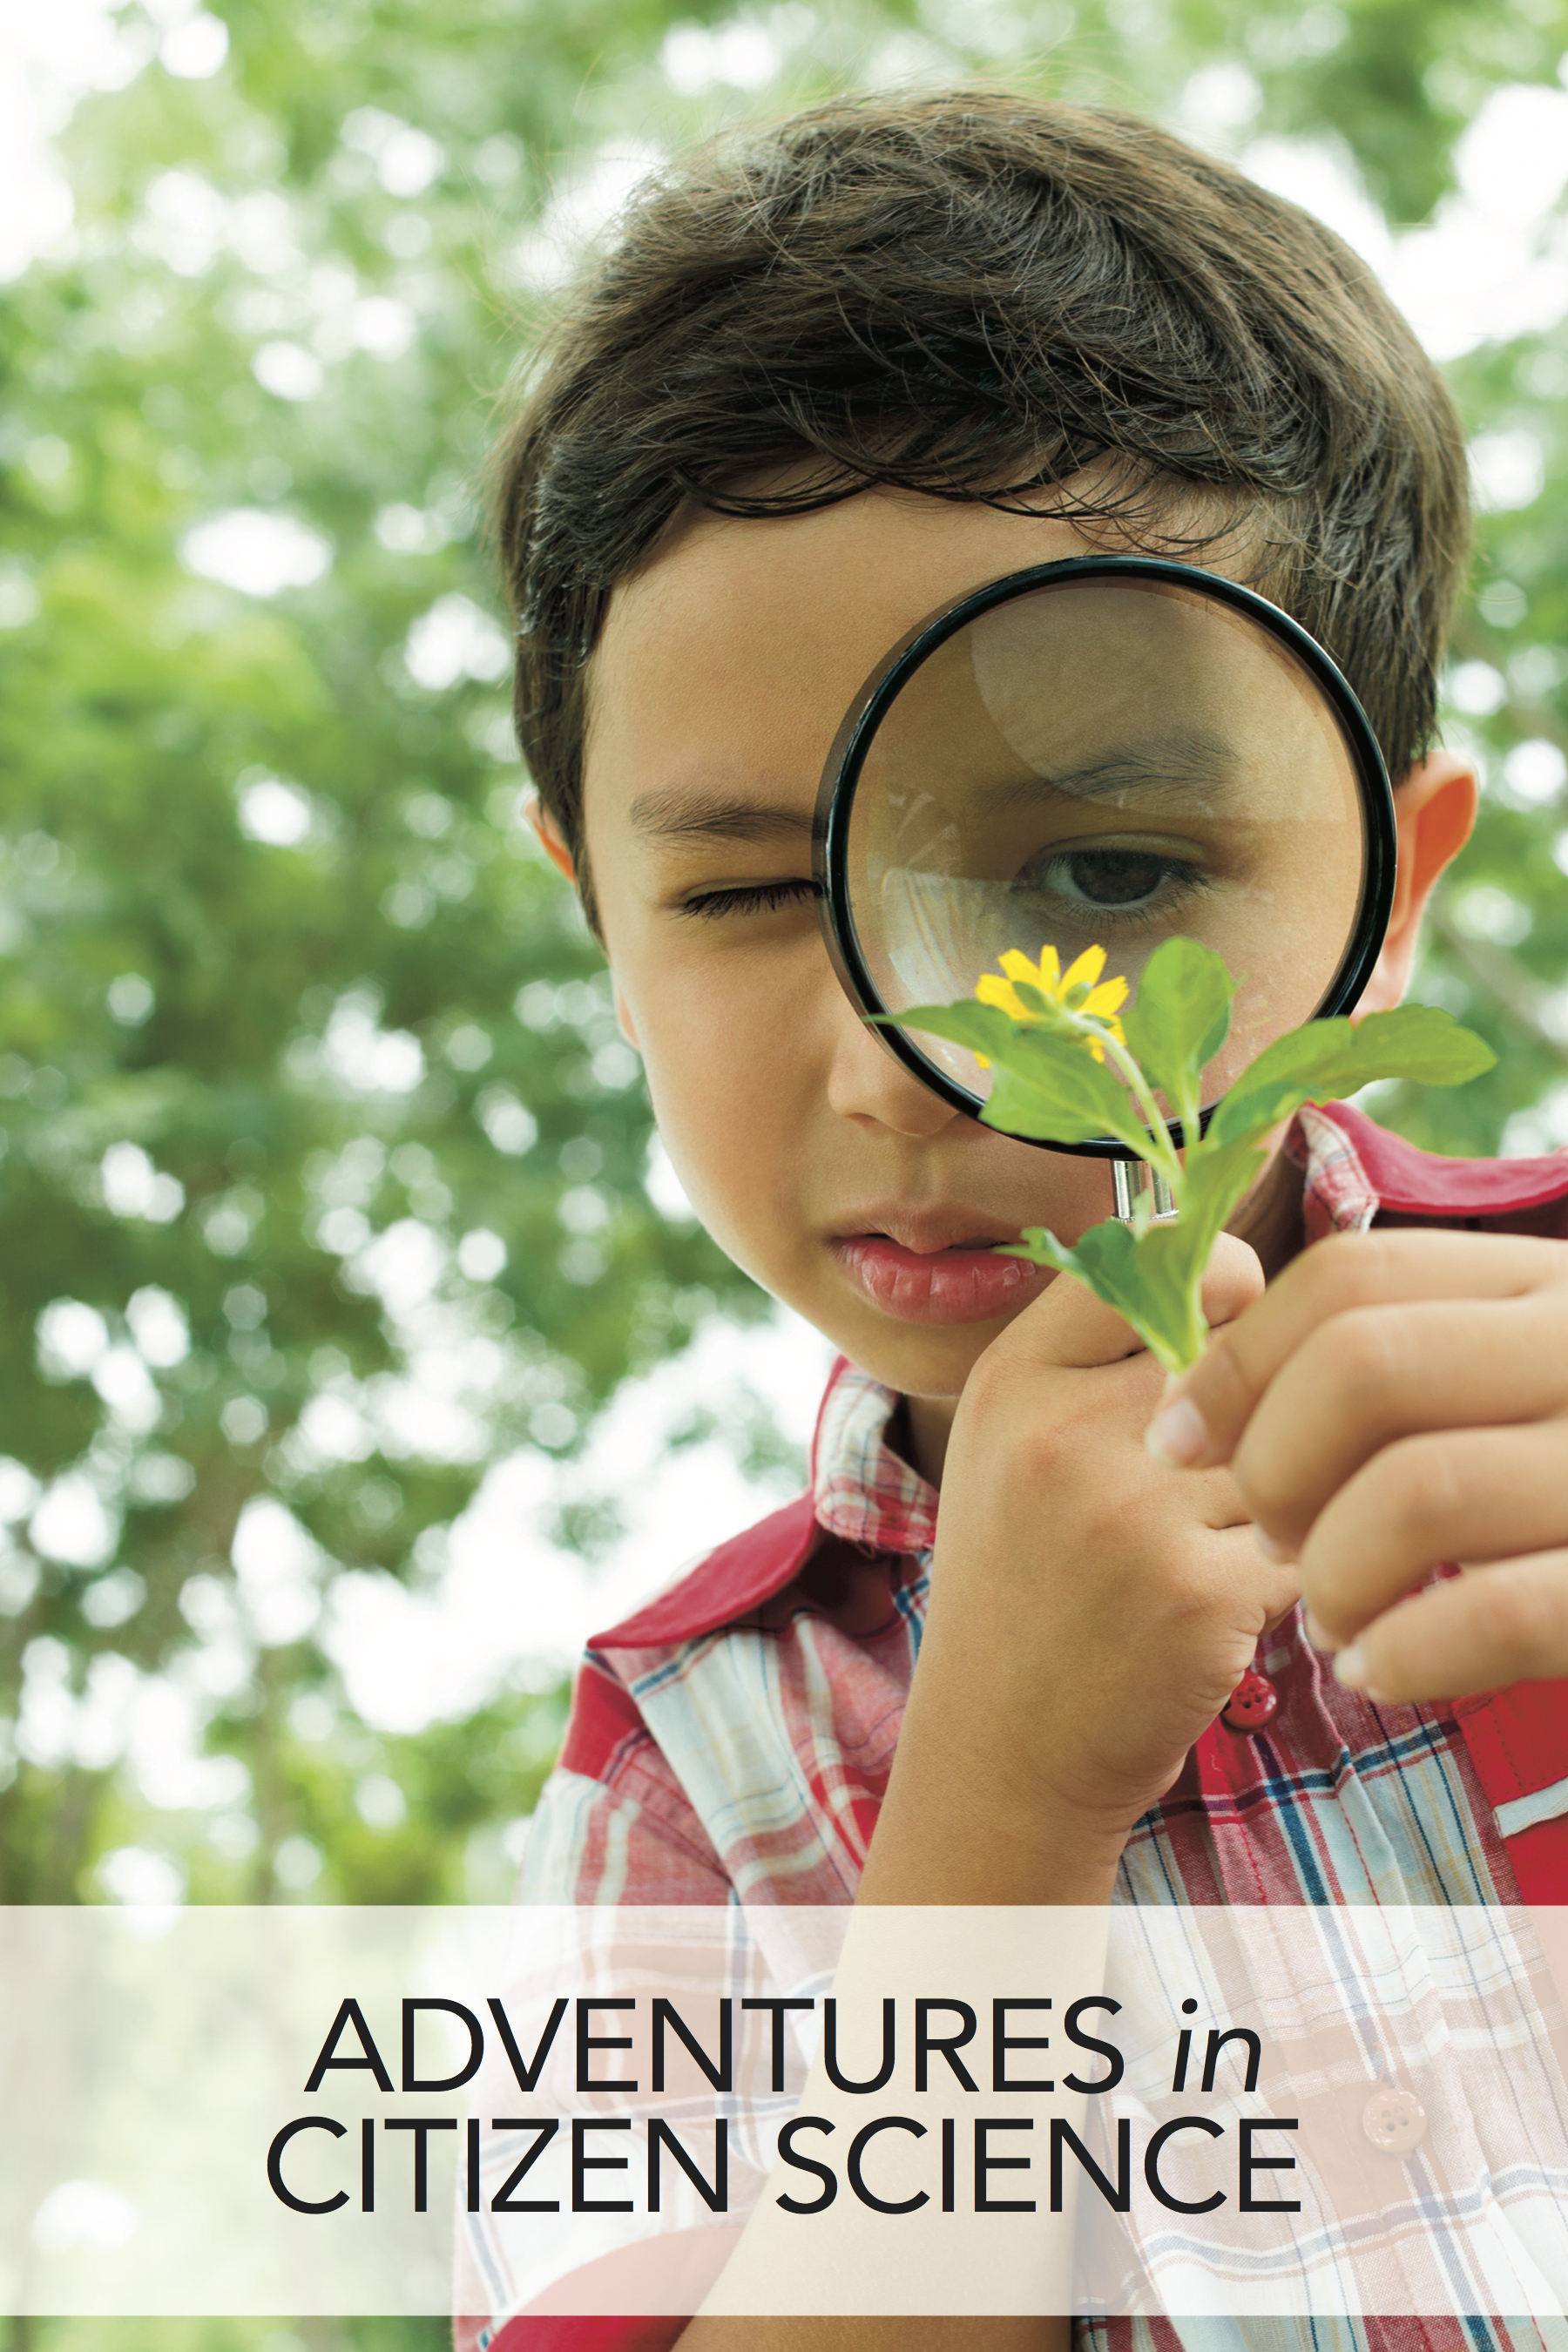 Citizen Science for Homeschoolers: Collecting Soil Samples